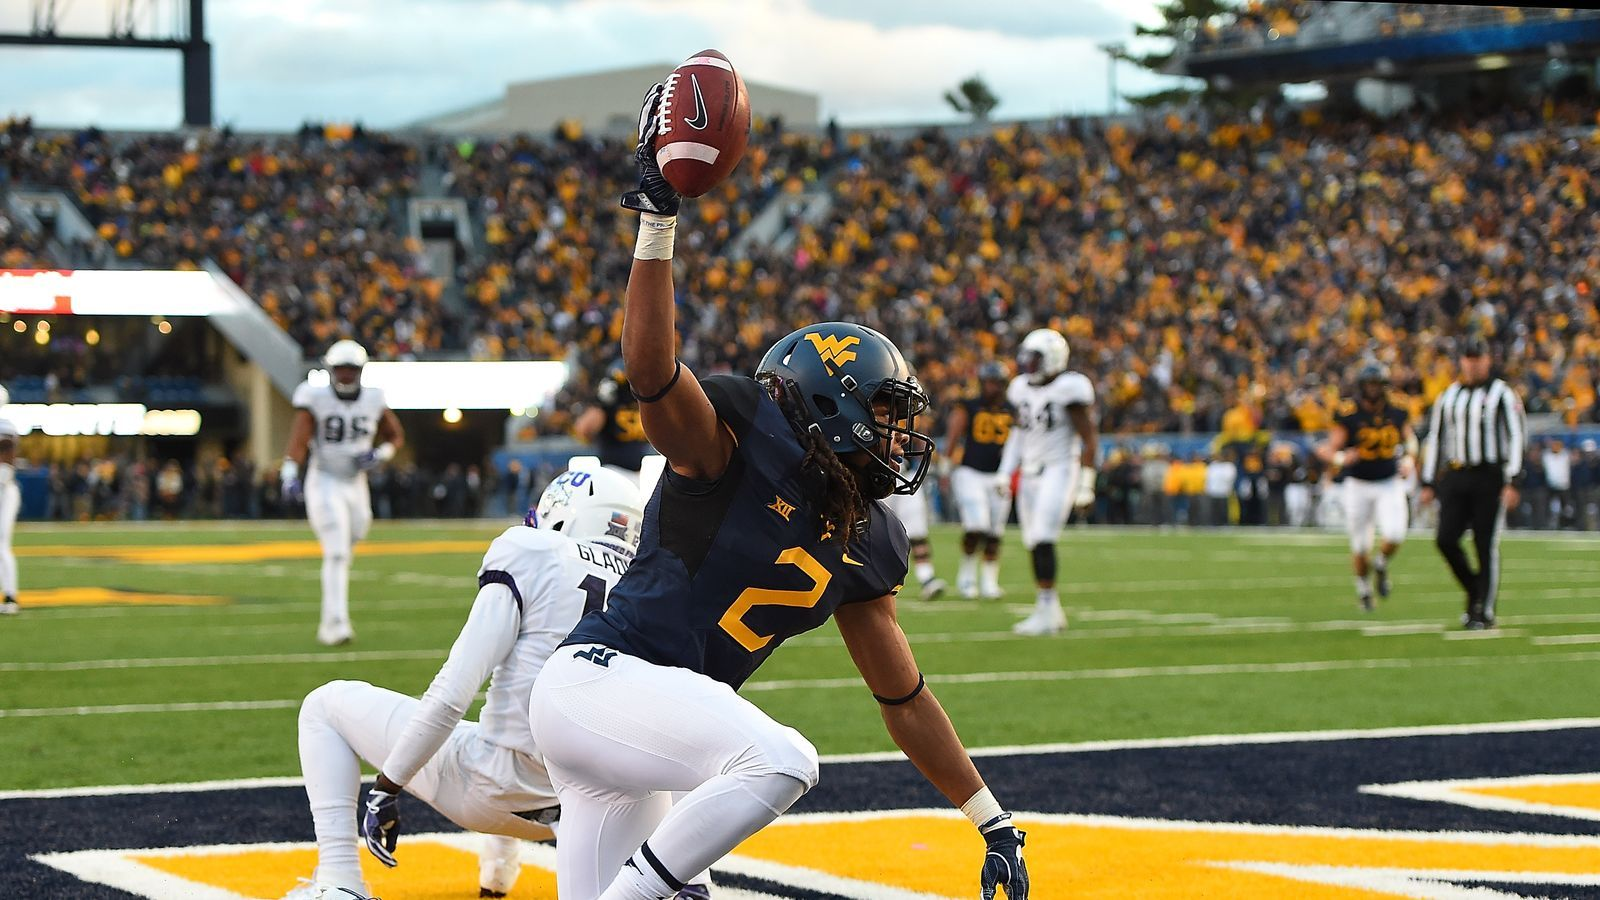 The Future of West Virginia Mountaineer Football in 2019